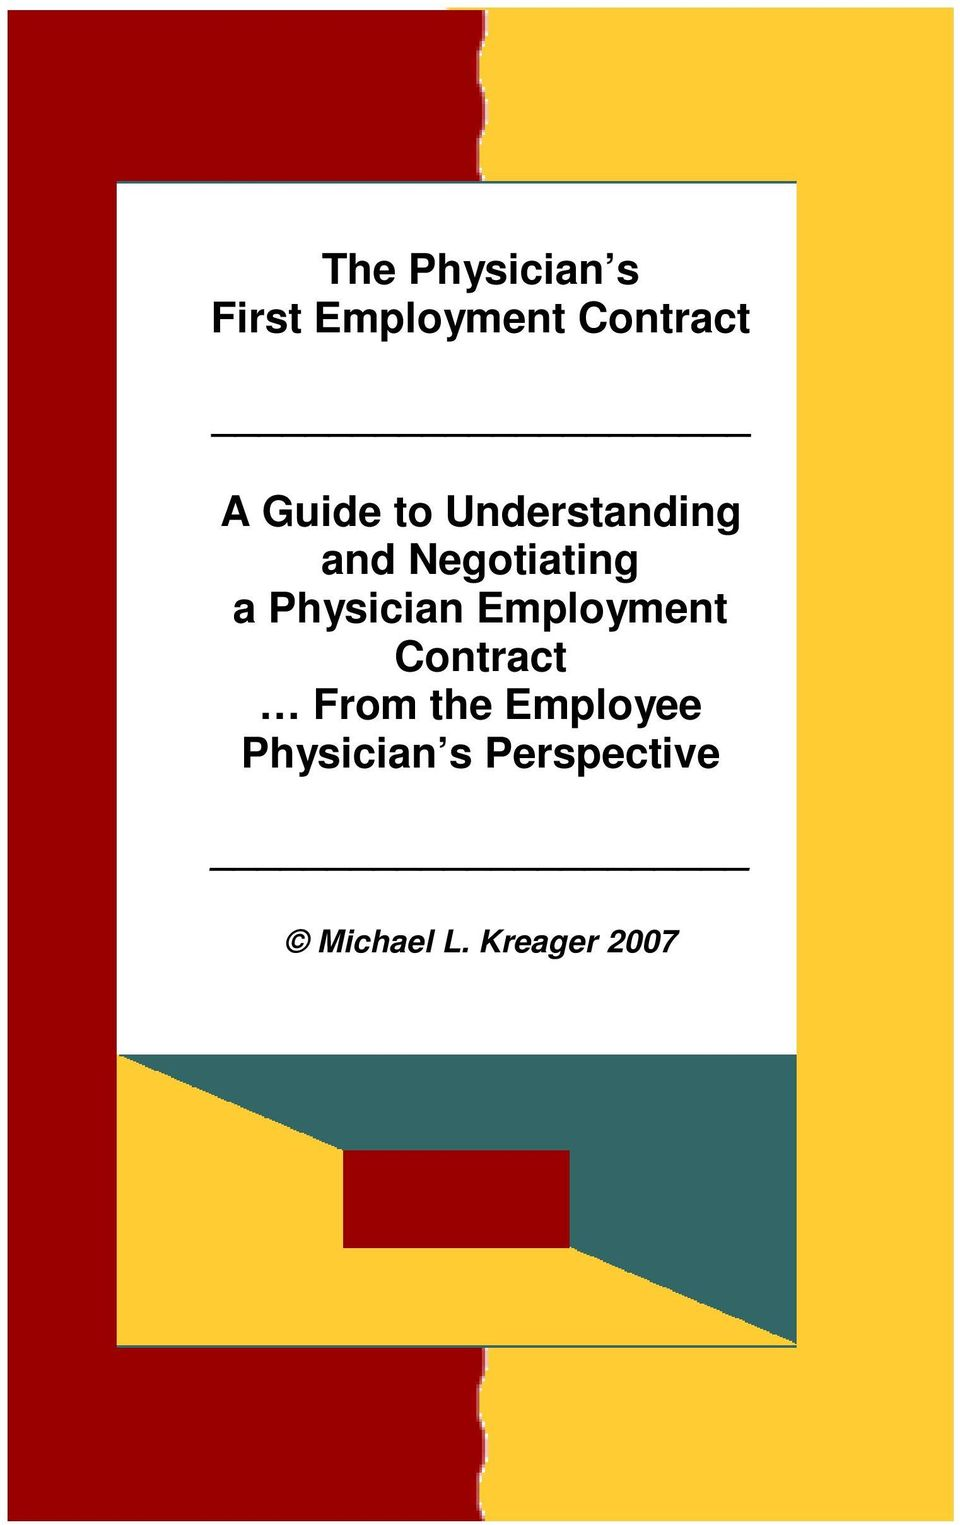 Physician Employment Contract From the